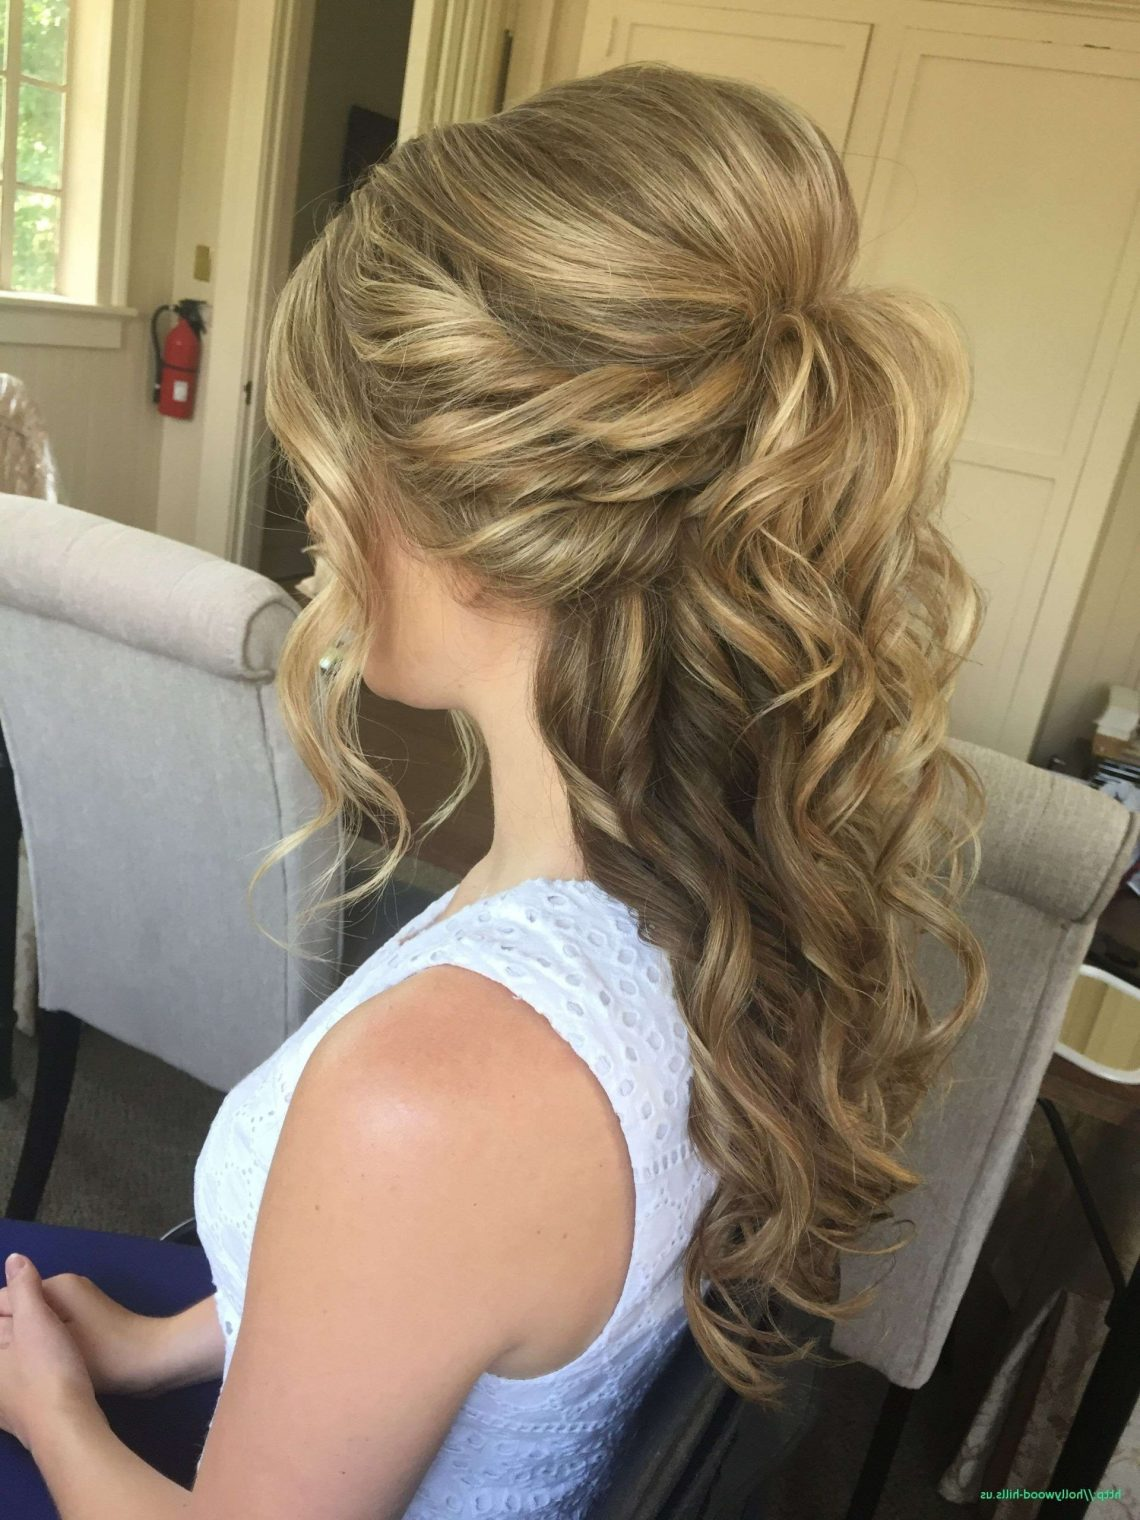 Image Result For Mother Of The Bride Hairstyles For Medium 20+ Cute Mother Of The Bride Wedding Hairstyles For Medium Length Hair